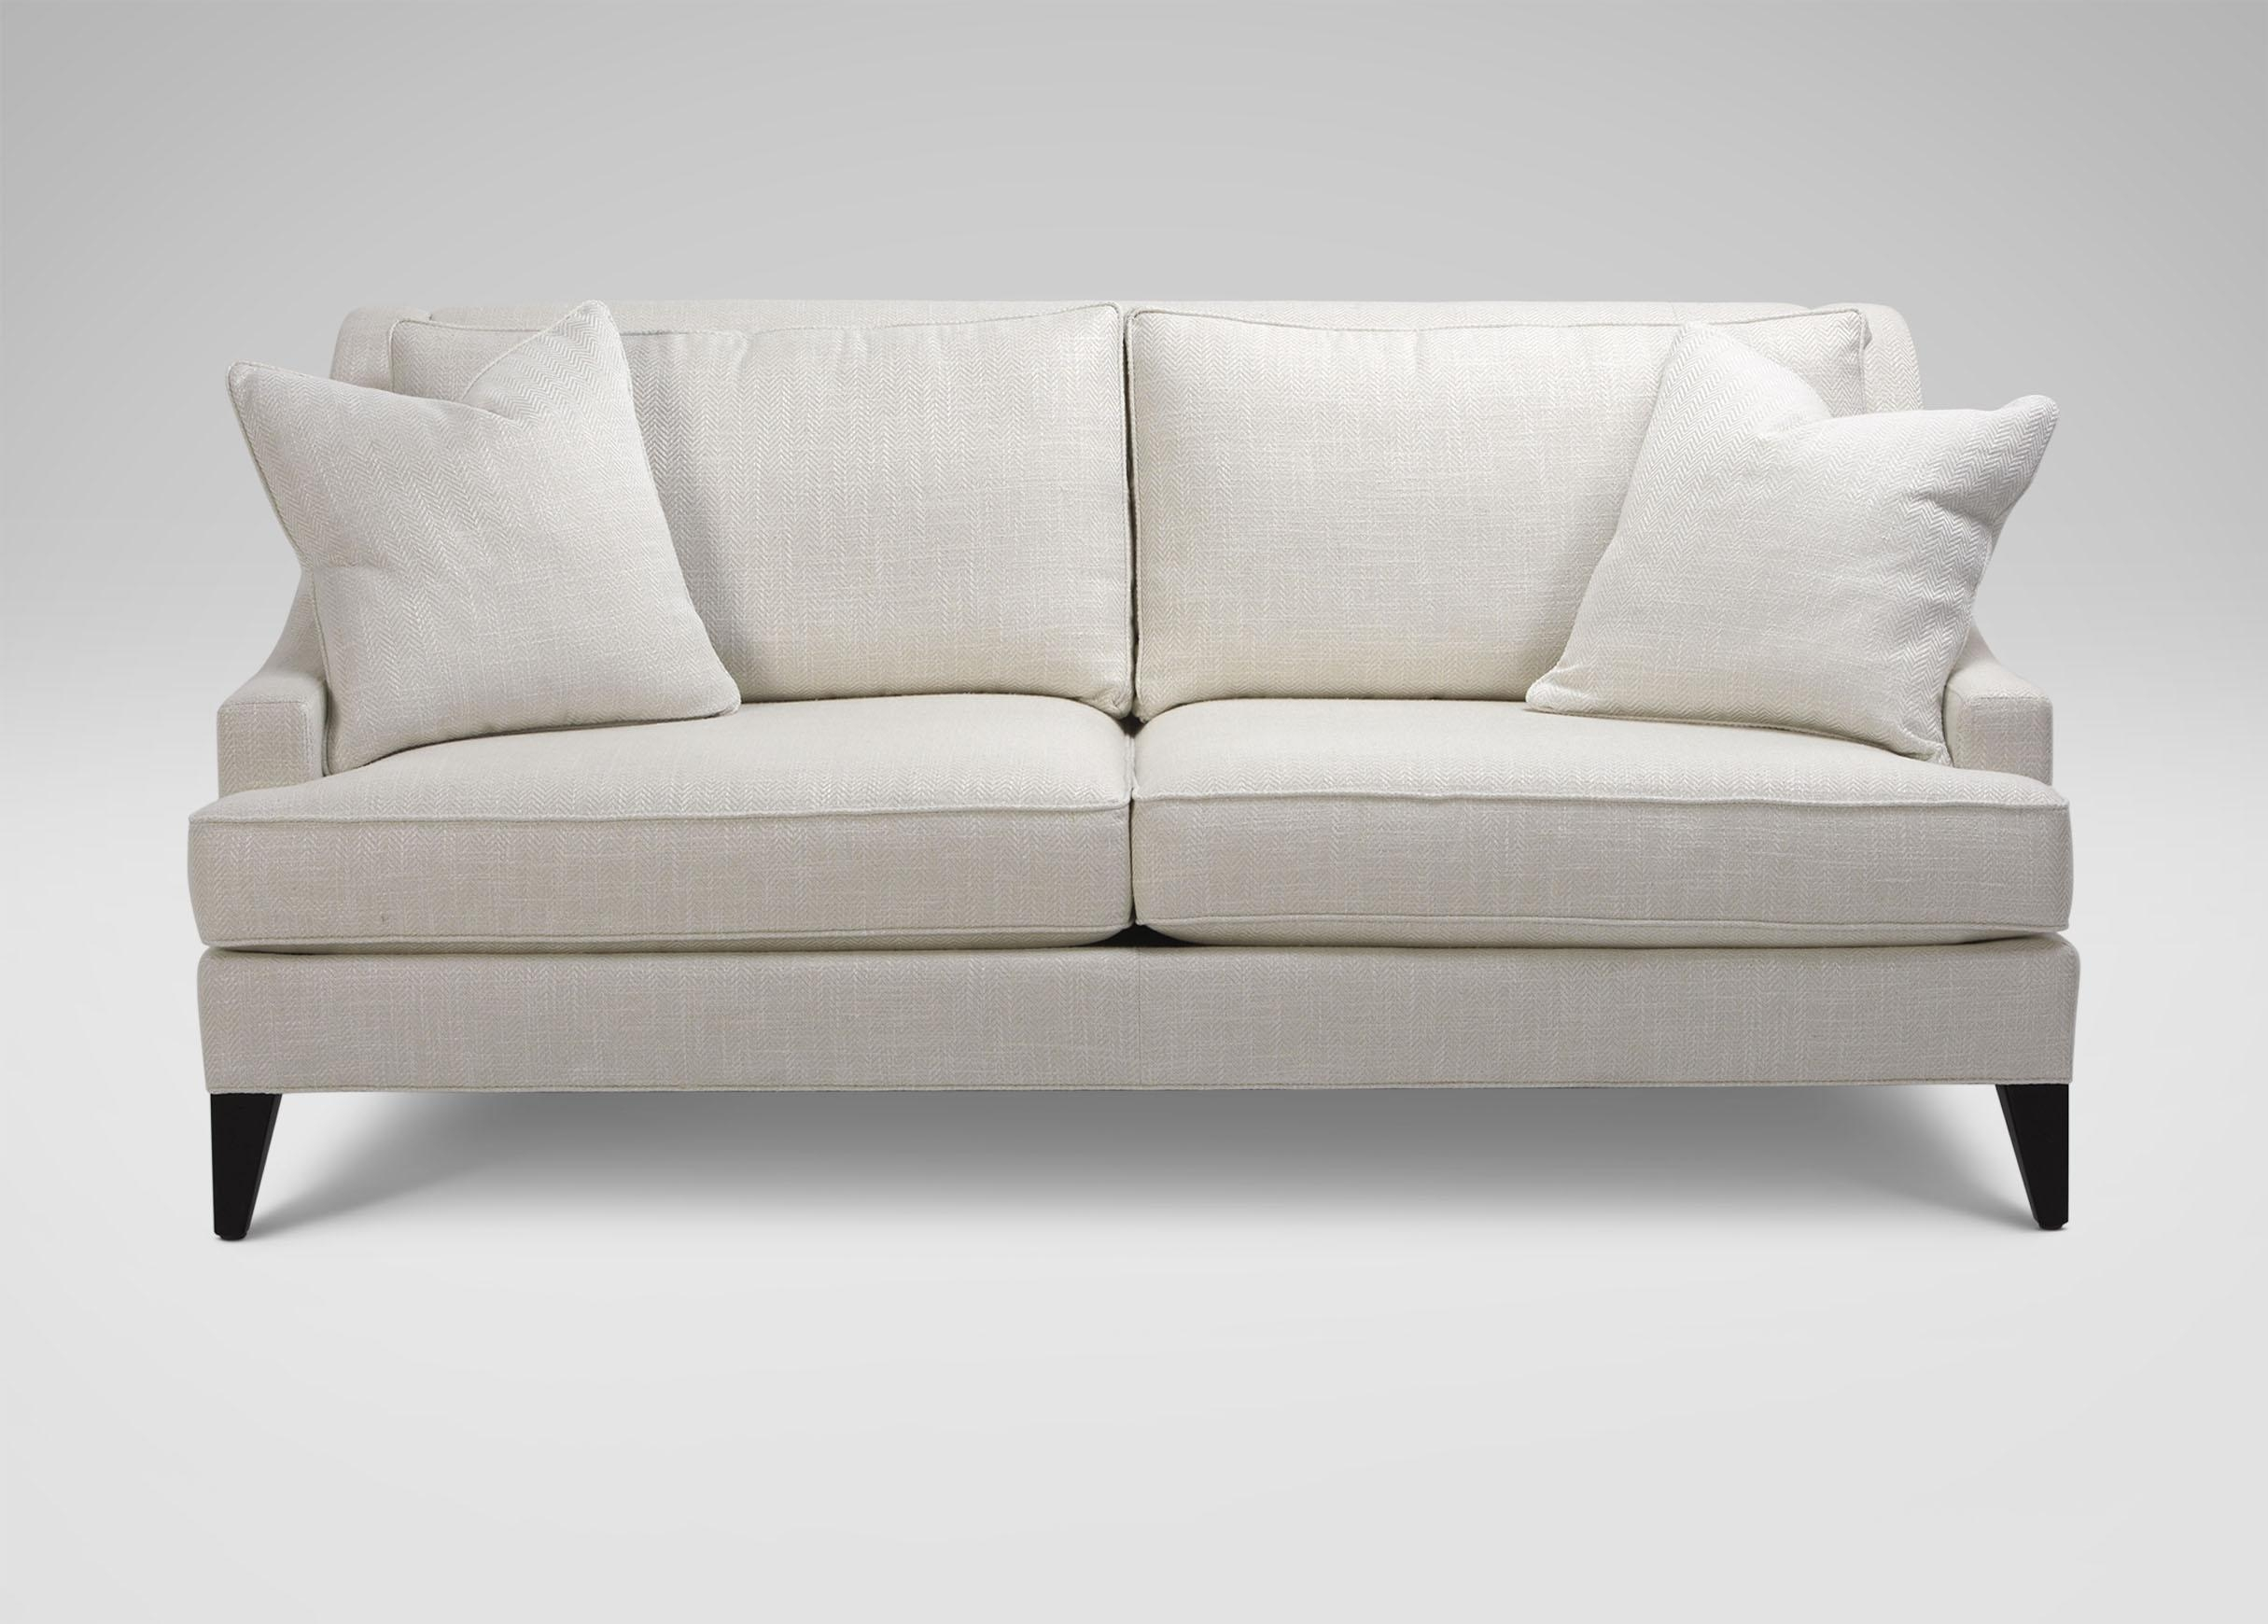 Emerson Sofa | Sofas & Loveseats Pertaining To Ethan Allen Sofas And Chairs (Image 8 of 20)